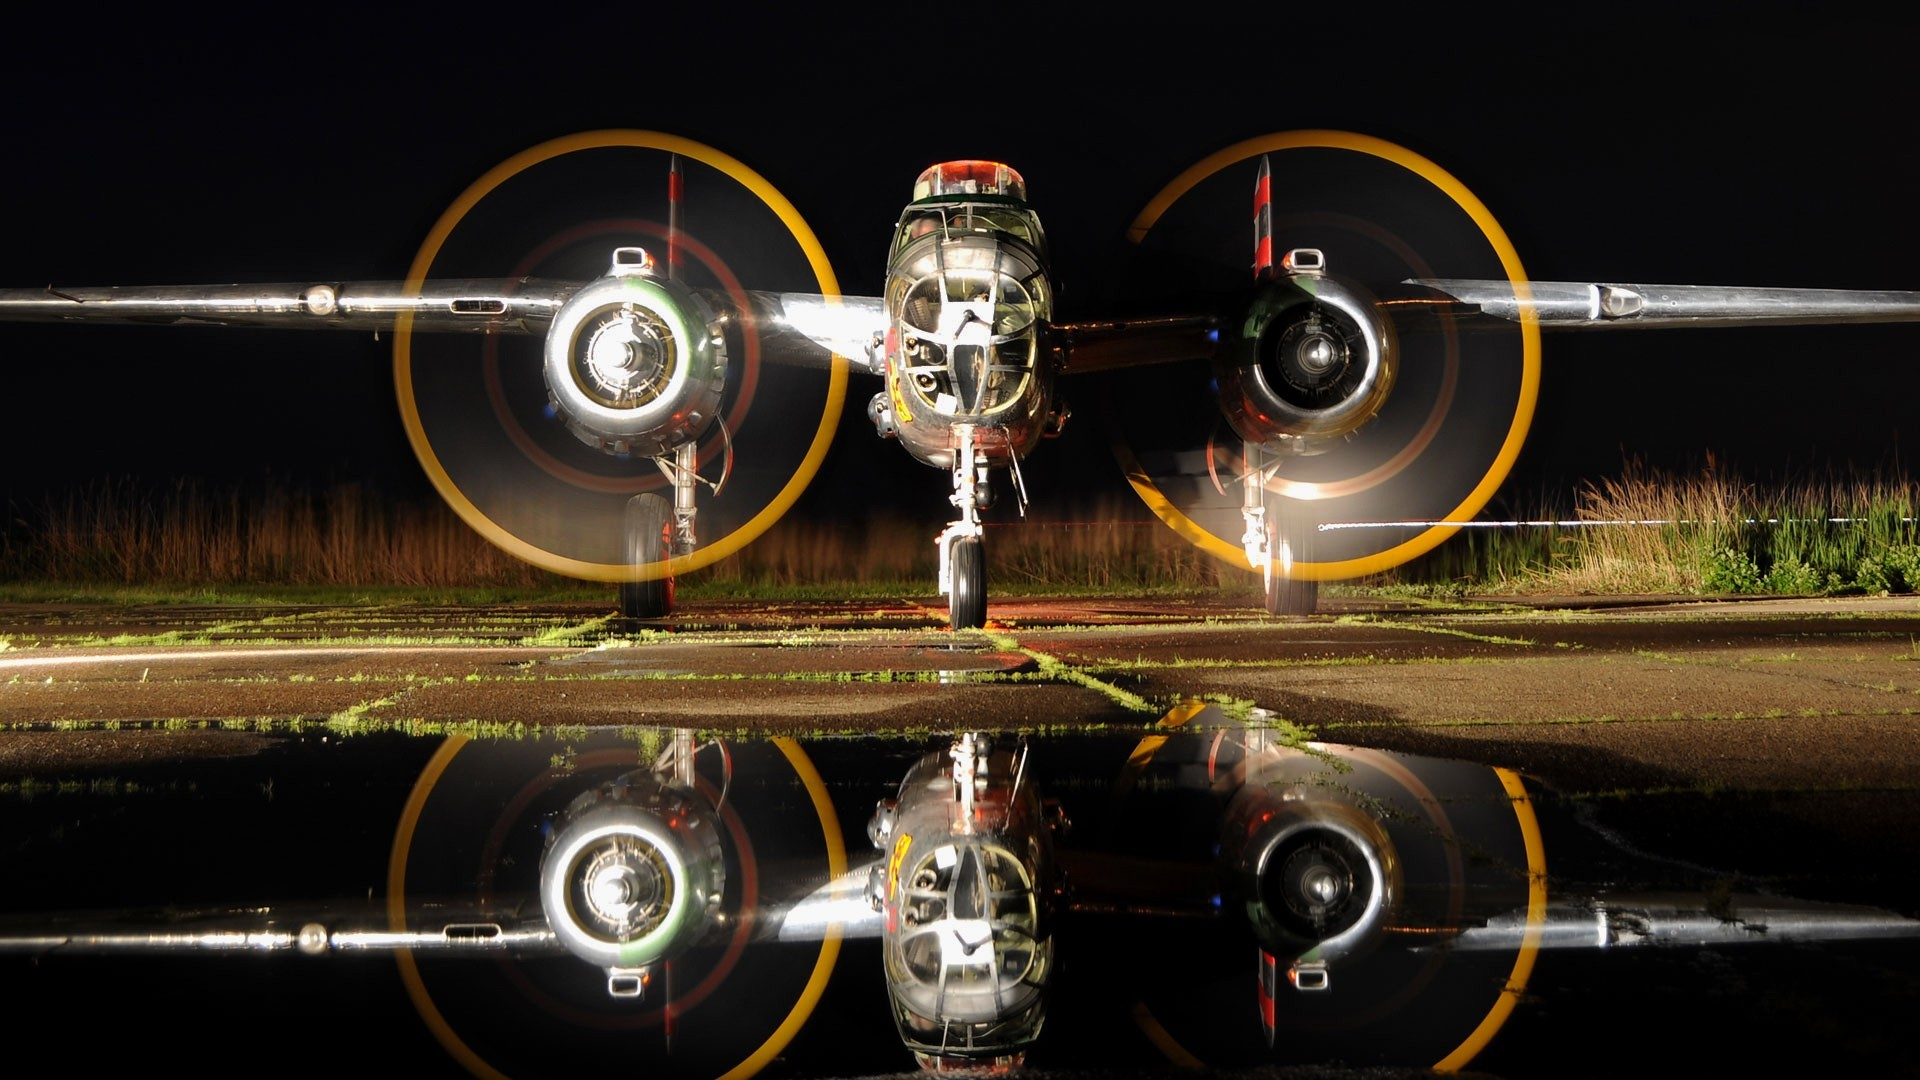 military water reflection wallpaper     27455   WallpaperUP .